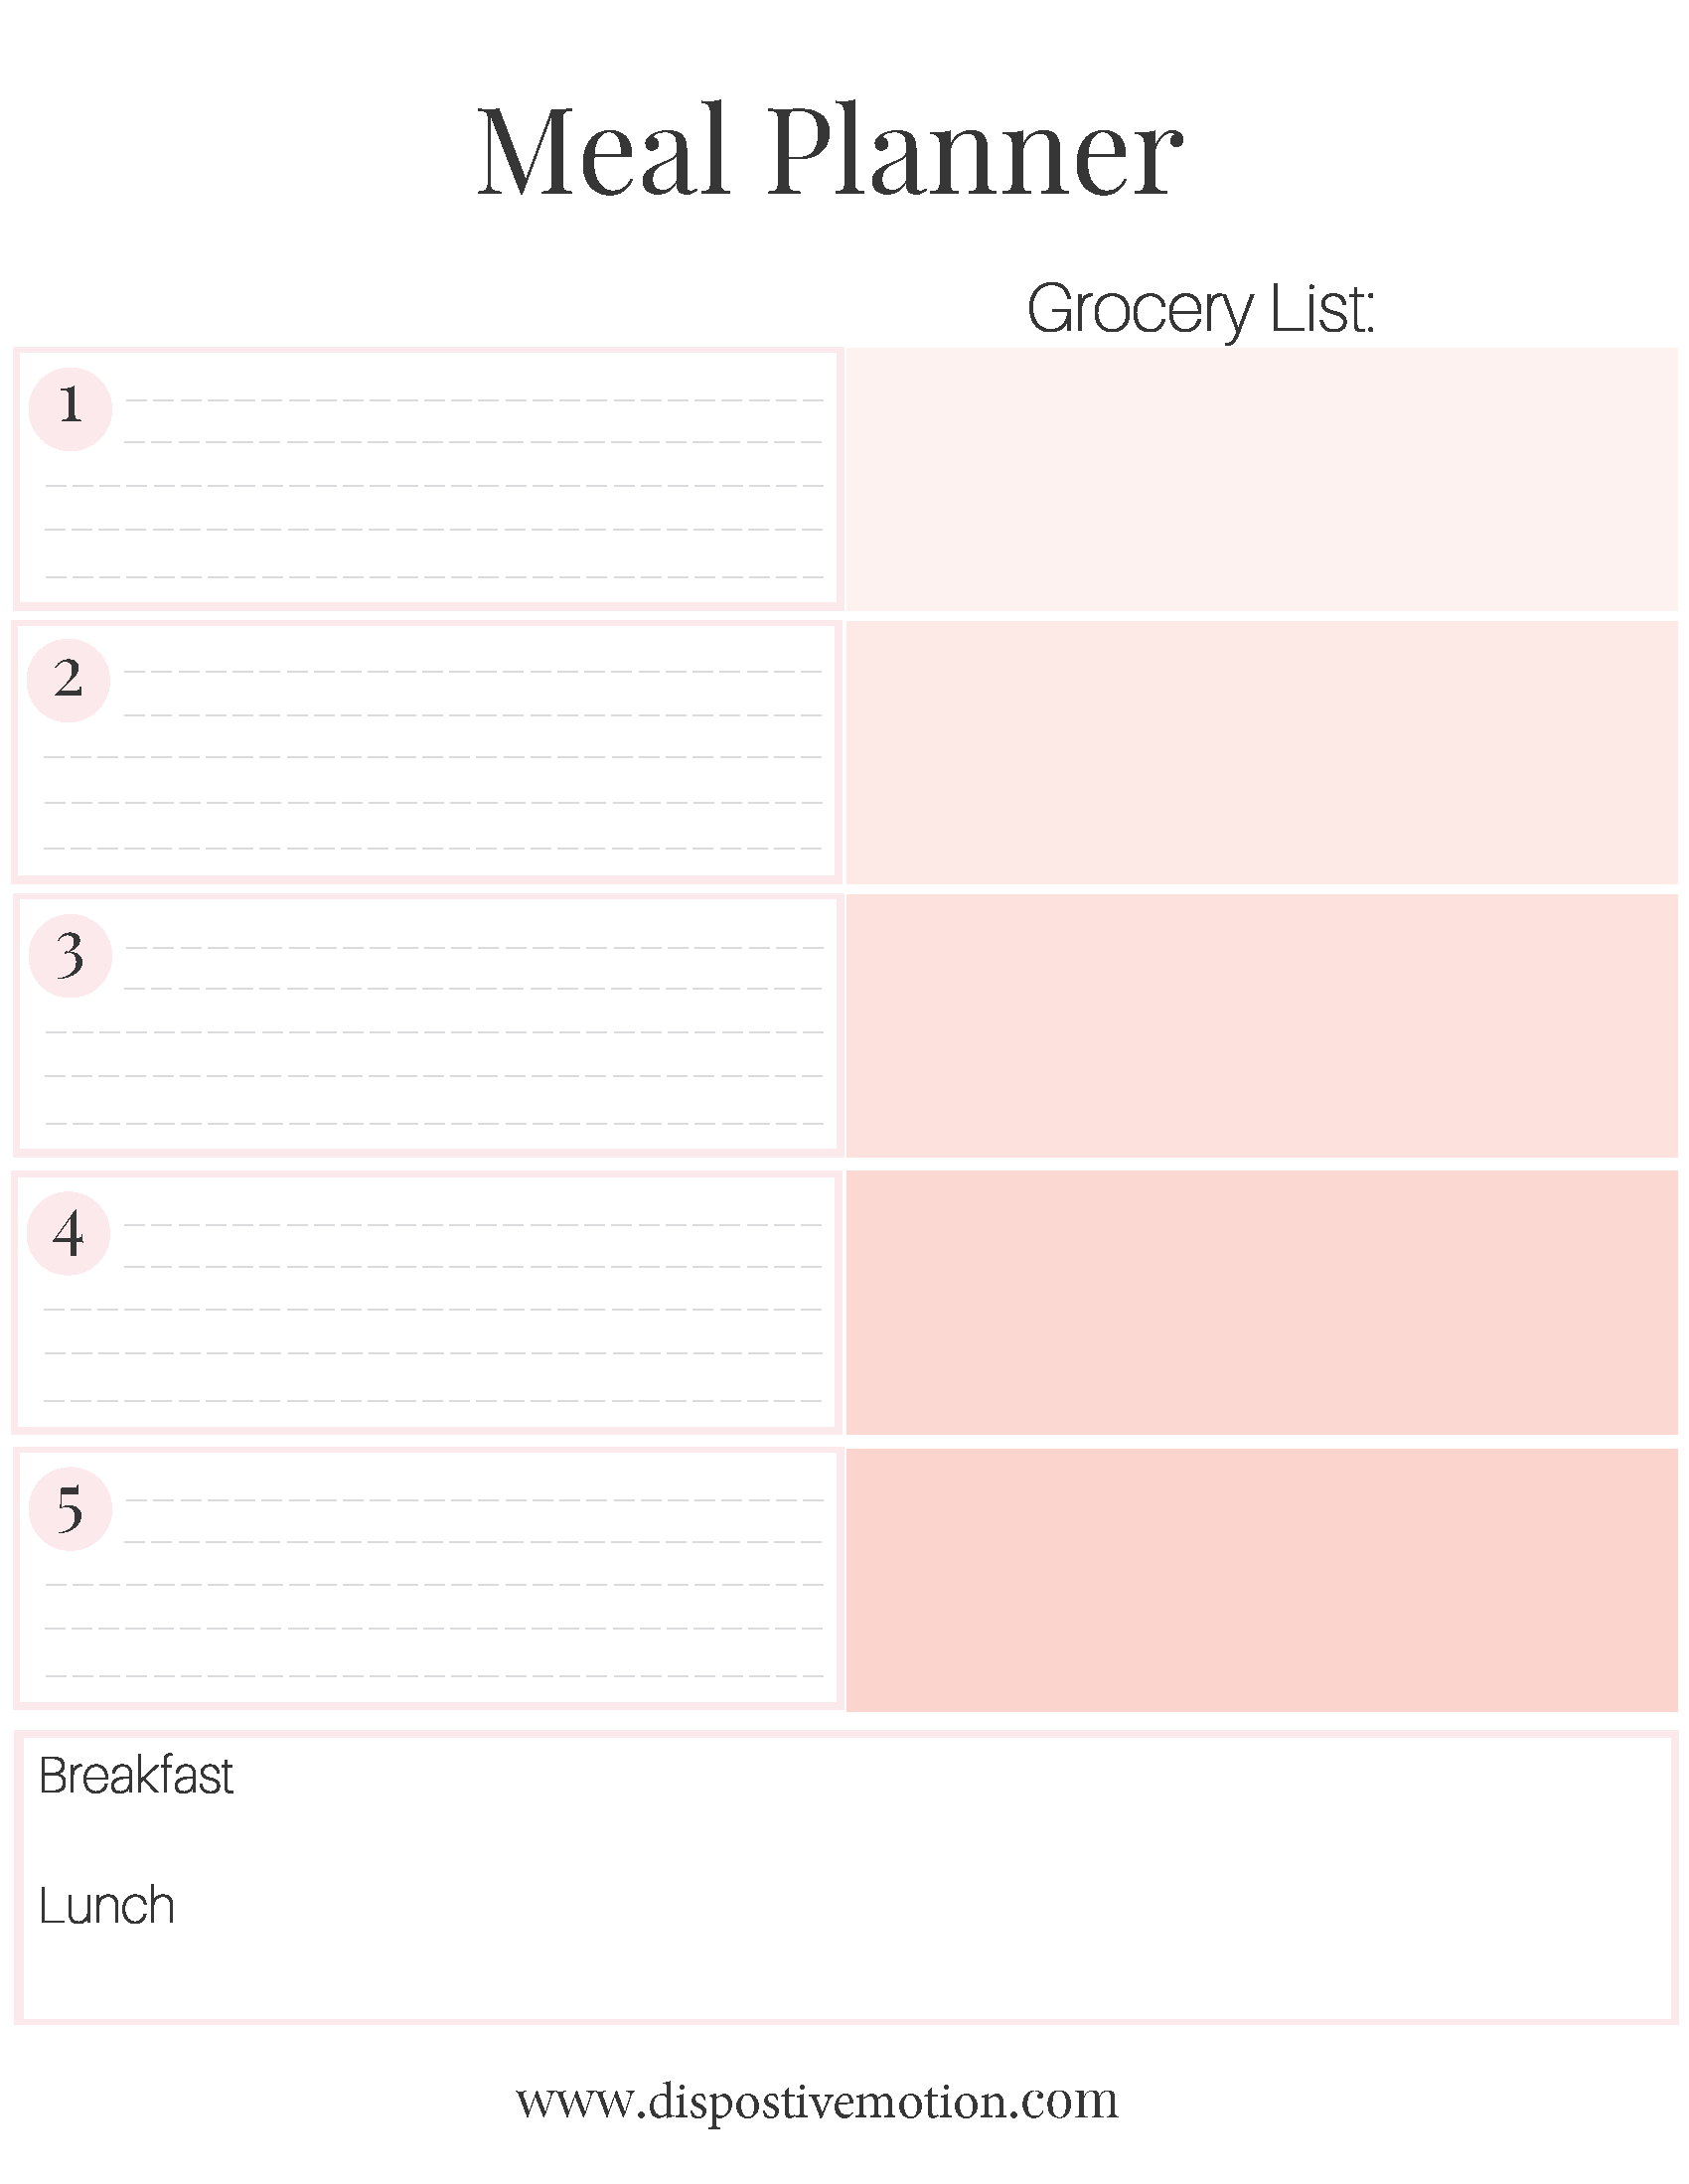 Meal_Planner_Page_1.png